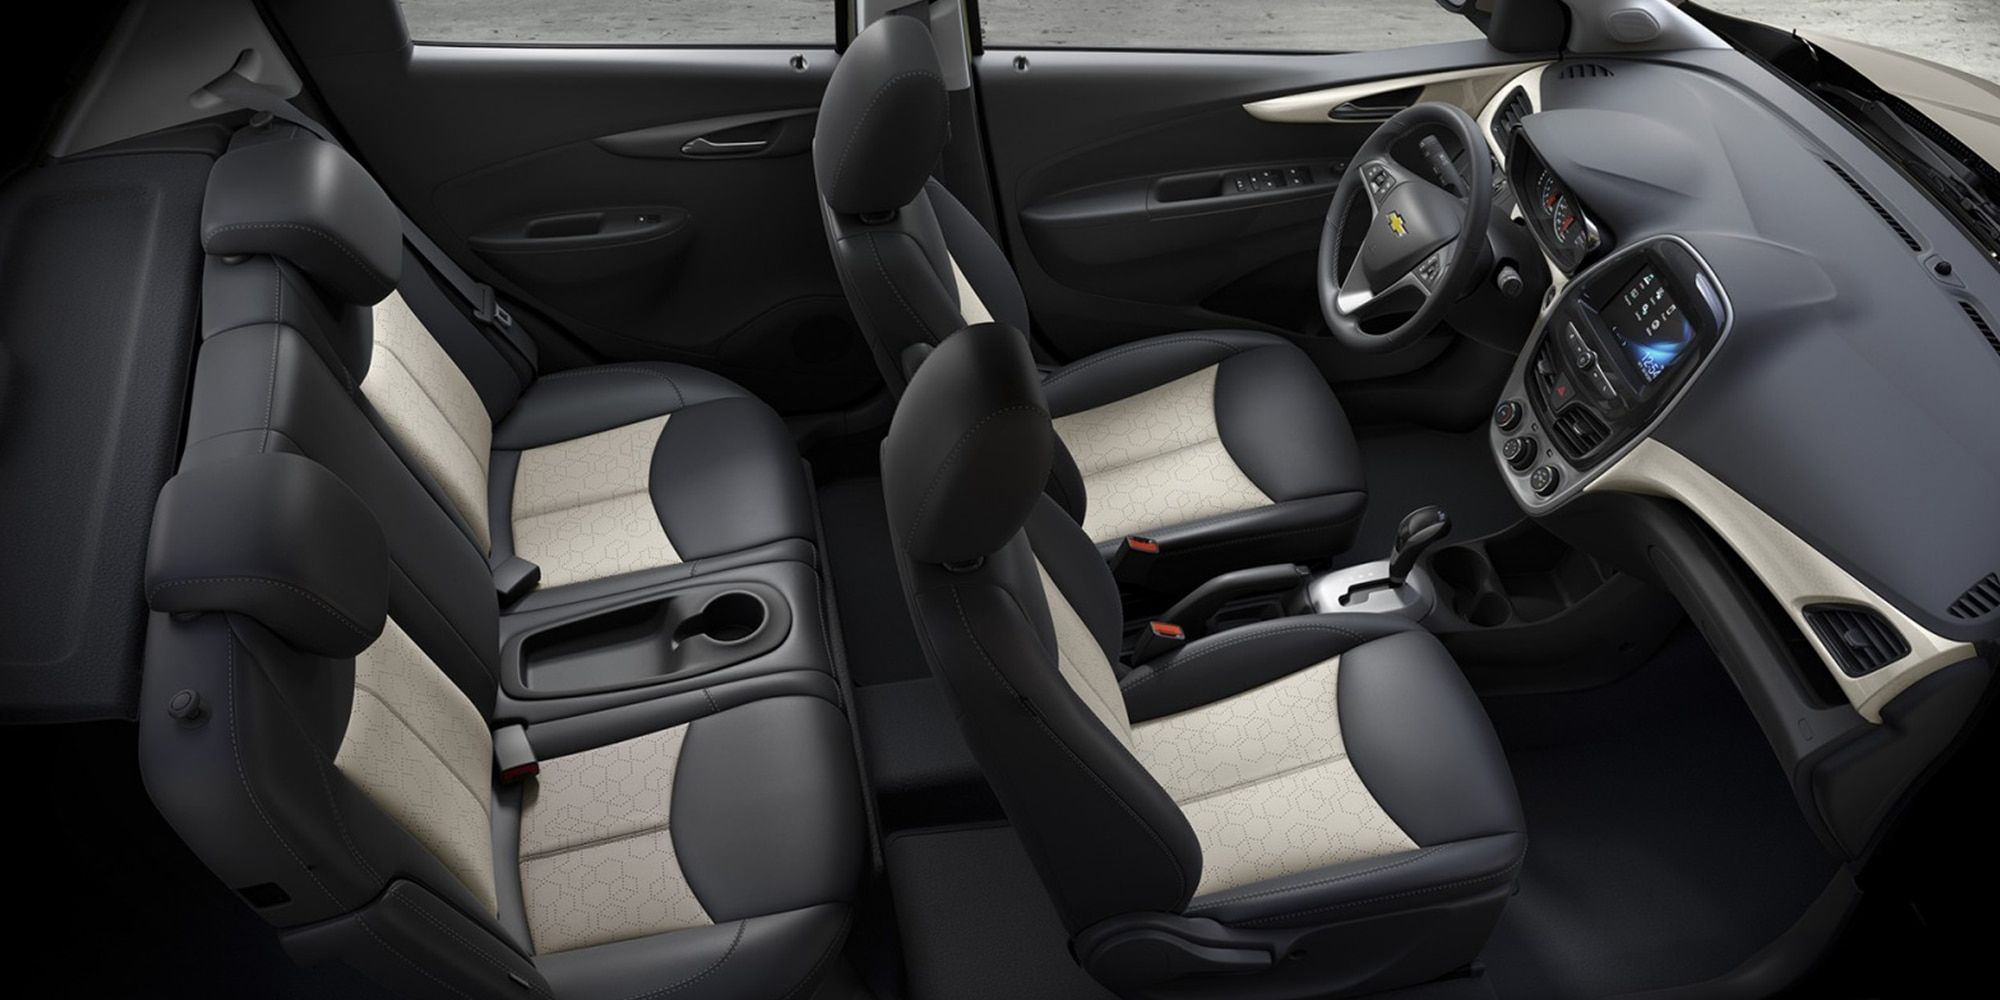 2018 Chevy Spark Interior Passenger Seating Capacity & More Car